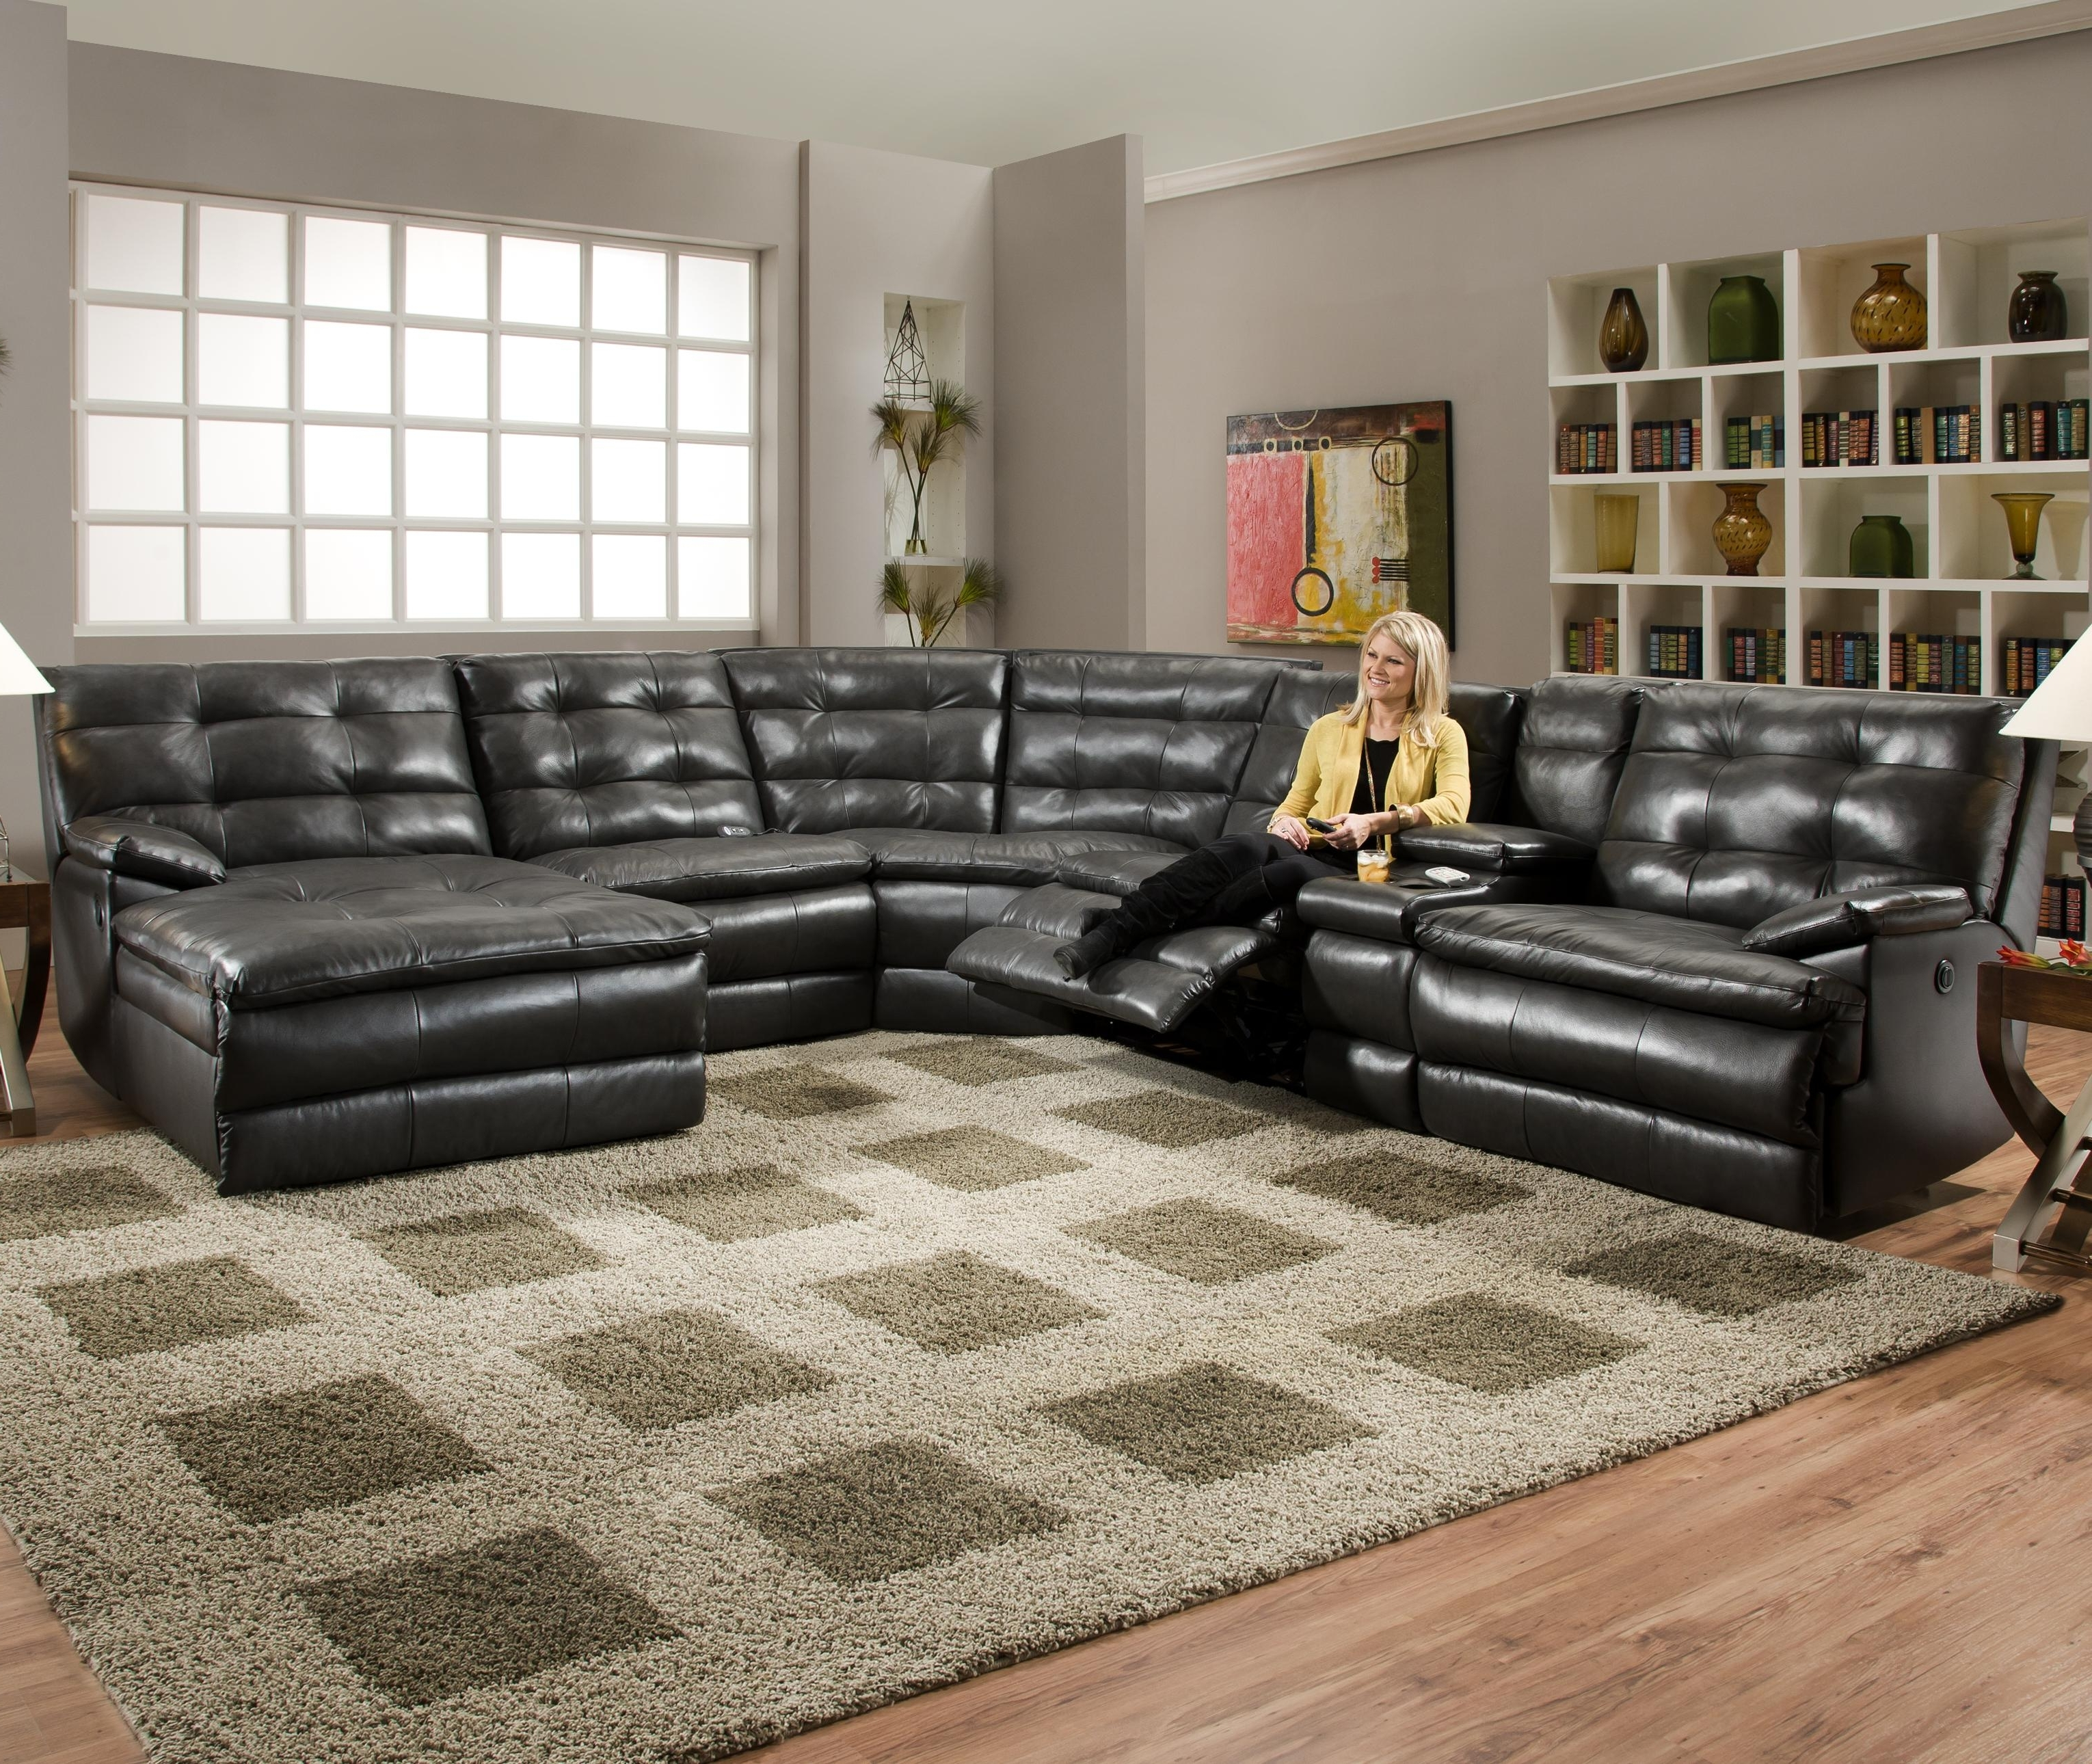 Well Known Sectional Sofa Design: Recliner Sectional Sofas Microfiber Throughout Sectional Sofas With Recliner And Chaise Lounge (View 5 of 15)